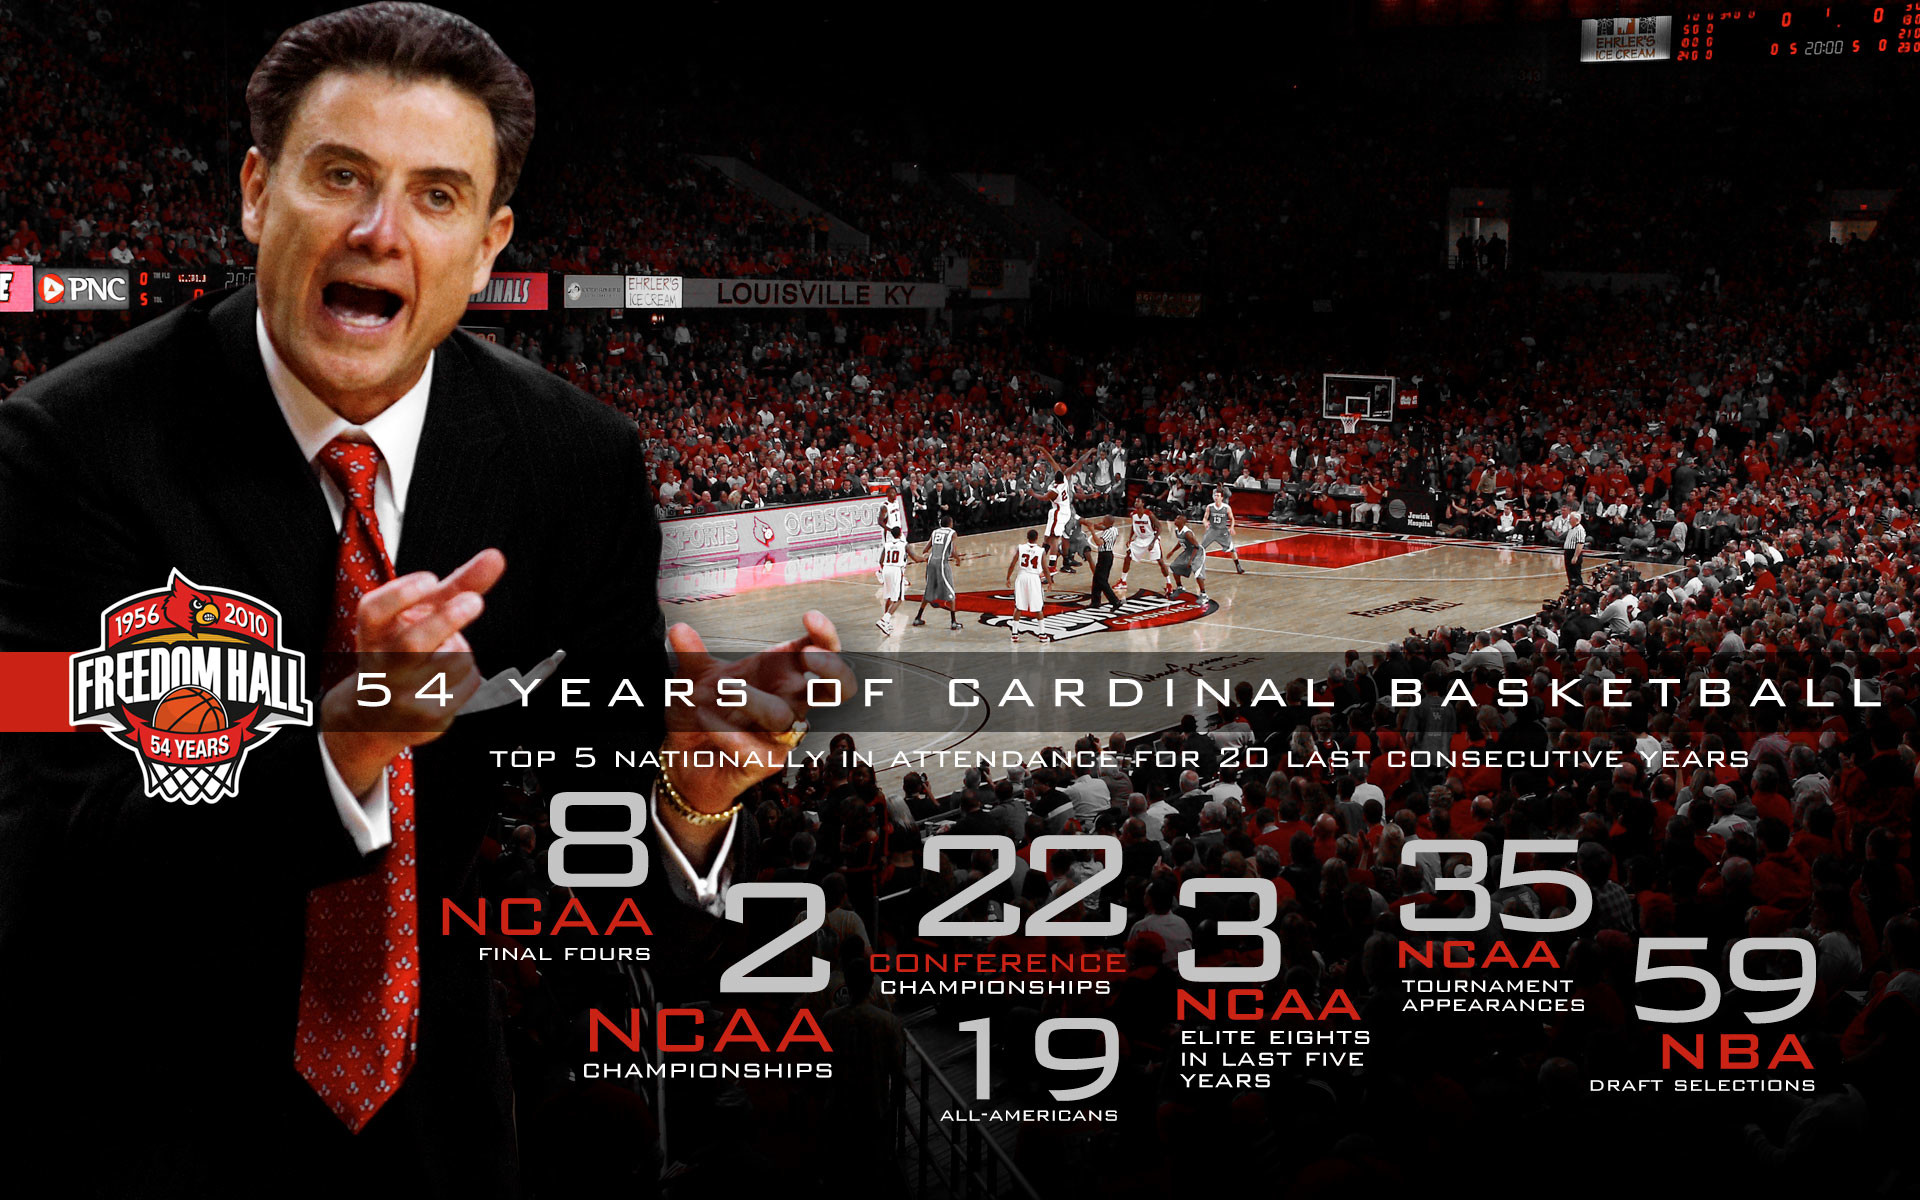 1920x1200 UofL Basketball Logo Wallpaper 640×960 University Of Louisville Wallpapers  (16 Wallpapers) |